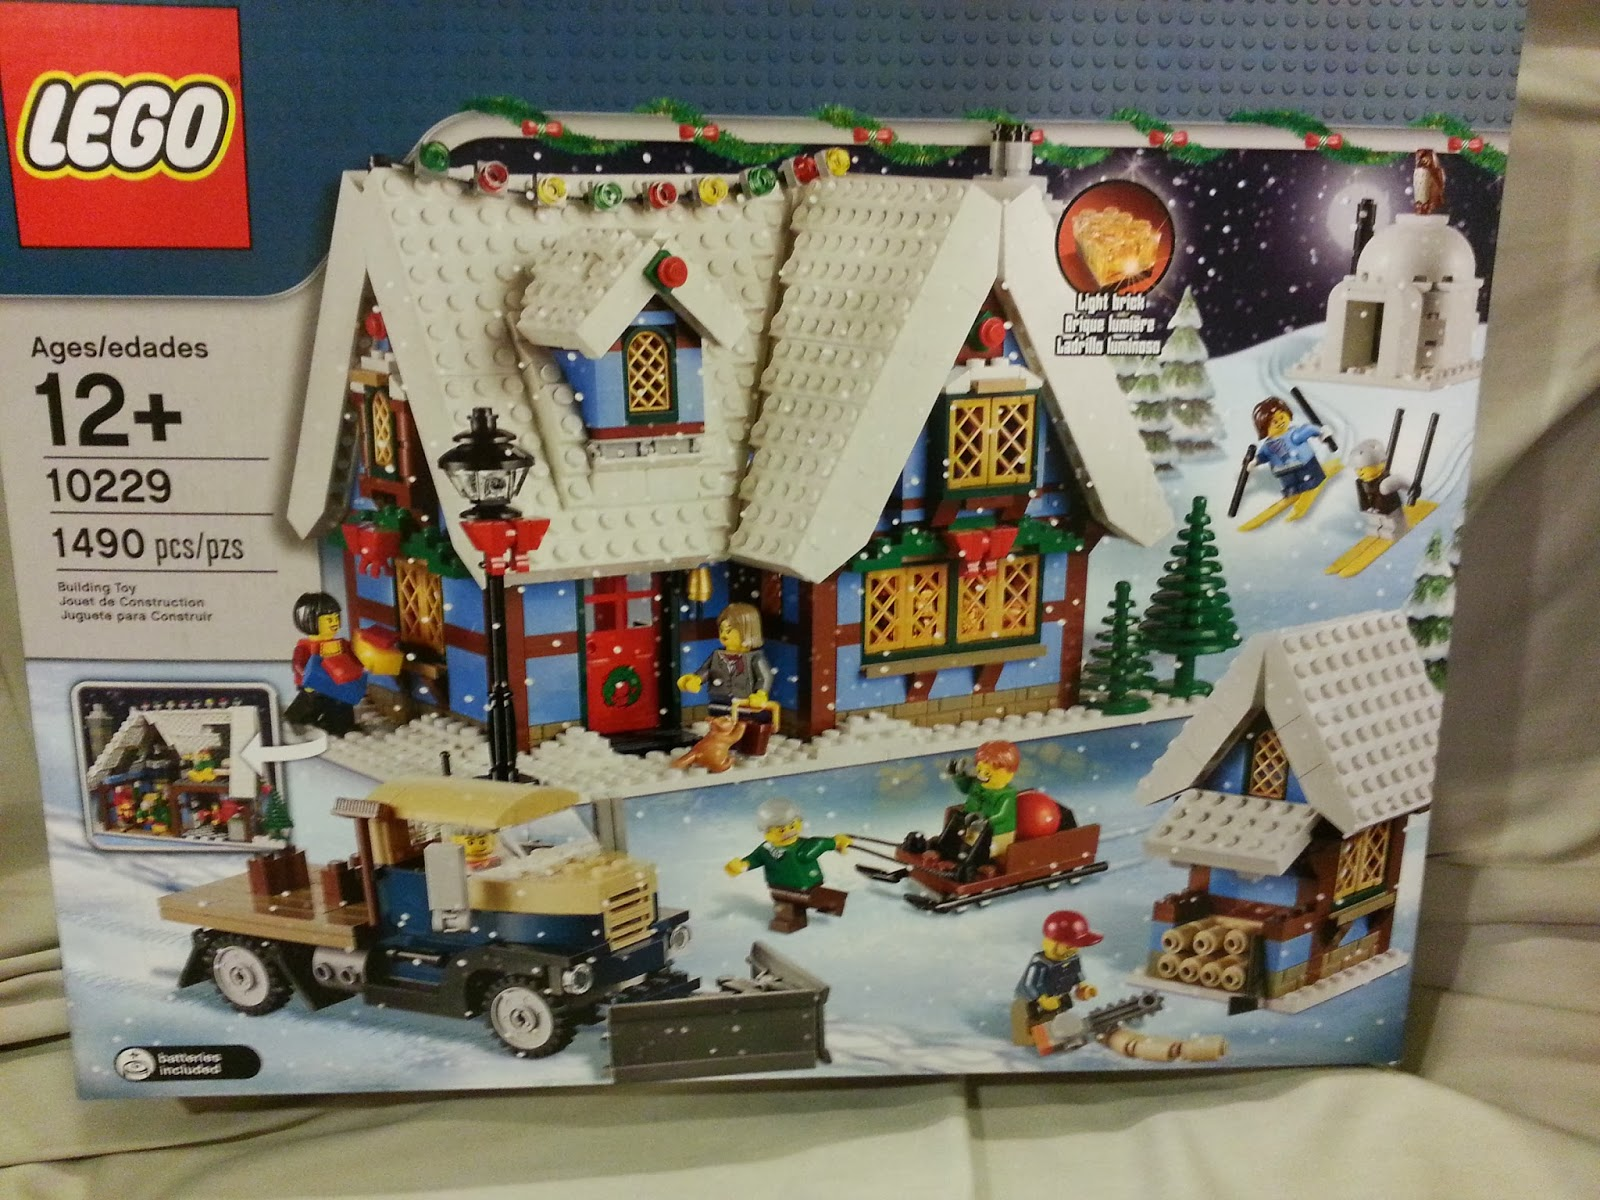 Playing With Bricks Lego 10229 Winter Village Cottage Review